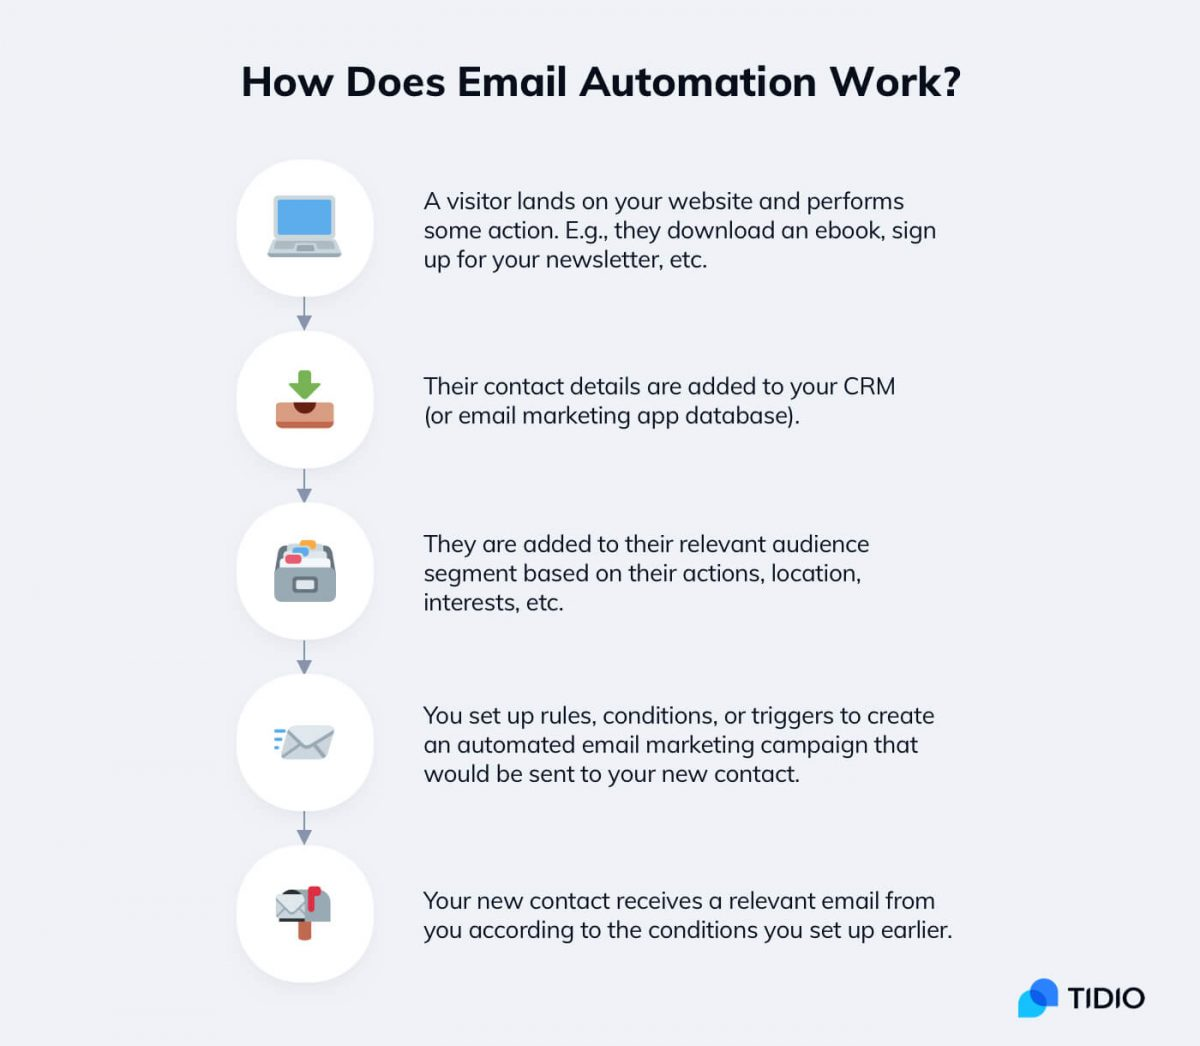 How does email automation work - an infographic about automated emailing